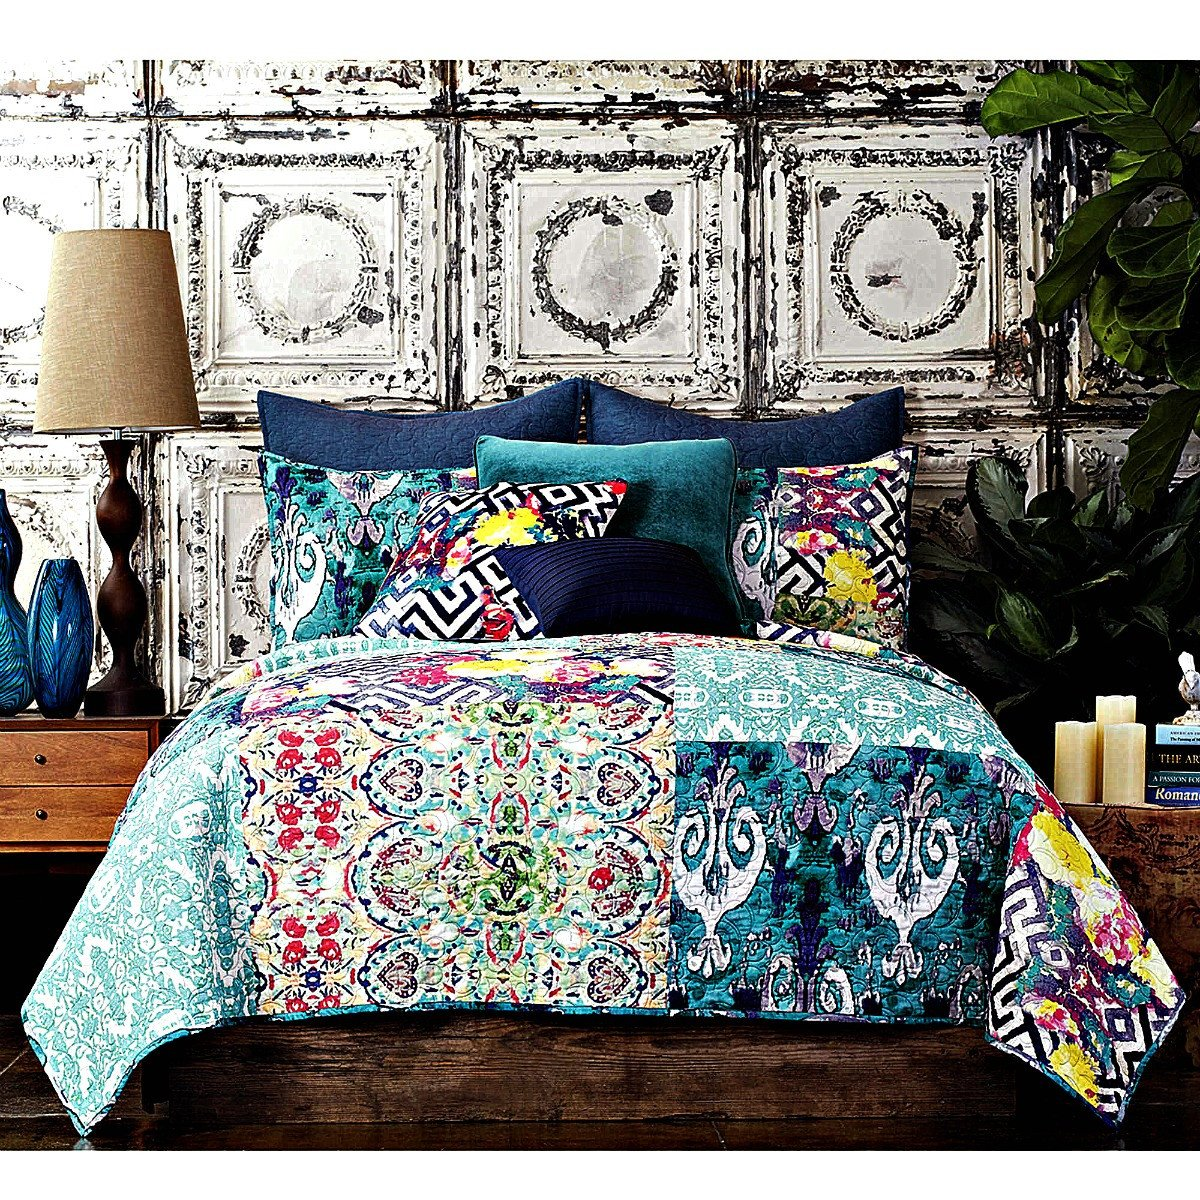 duvet bedding dp dodou com cover amazon kitchen queen home set style boho comforter bohemian